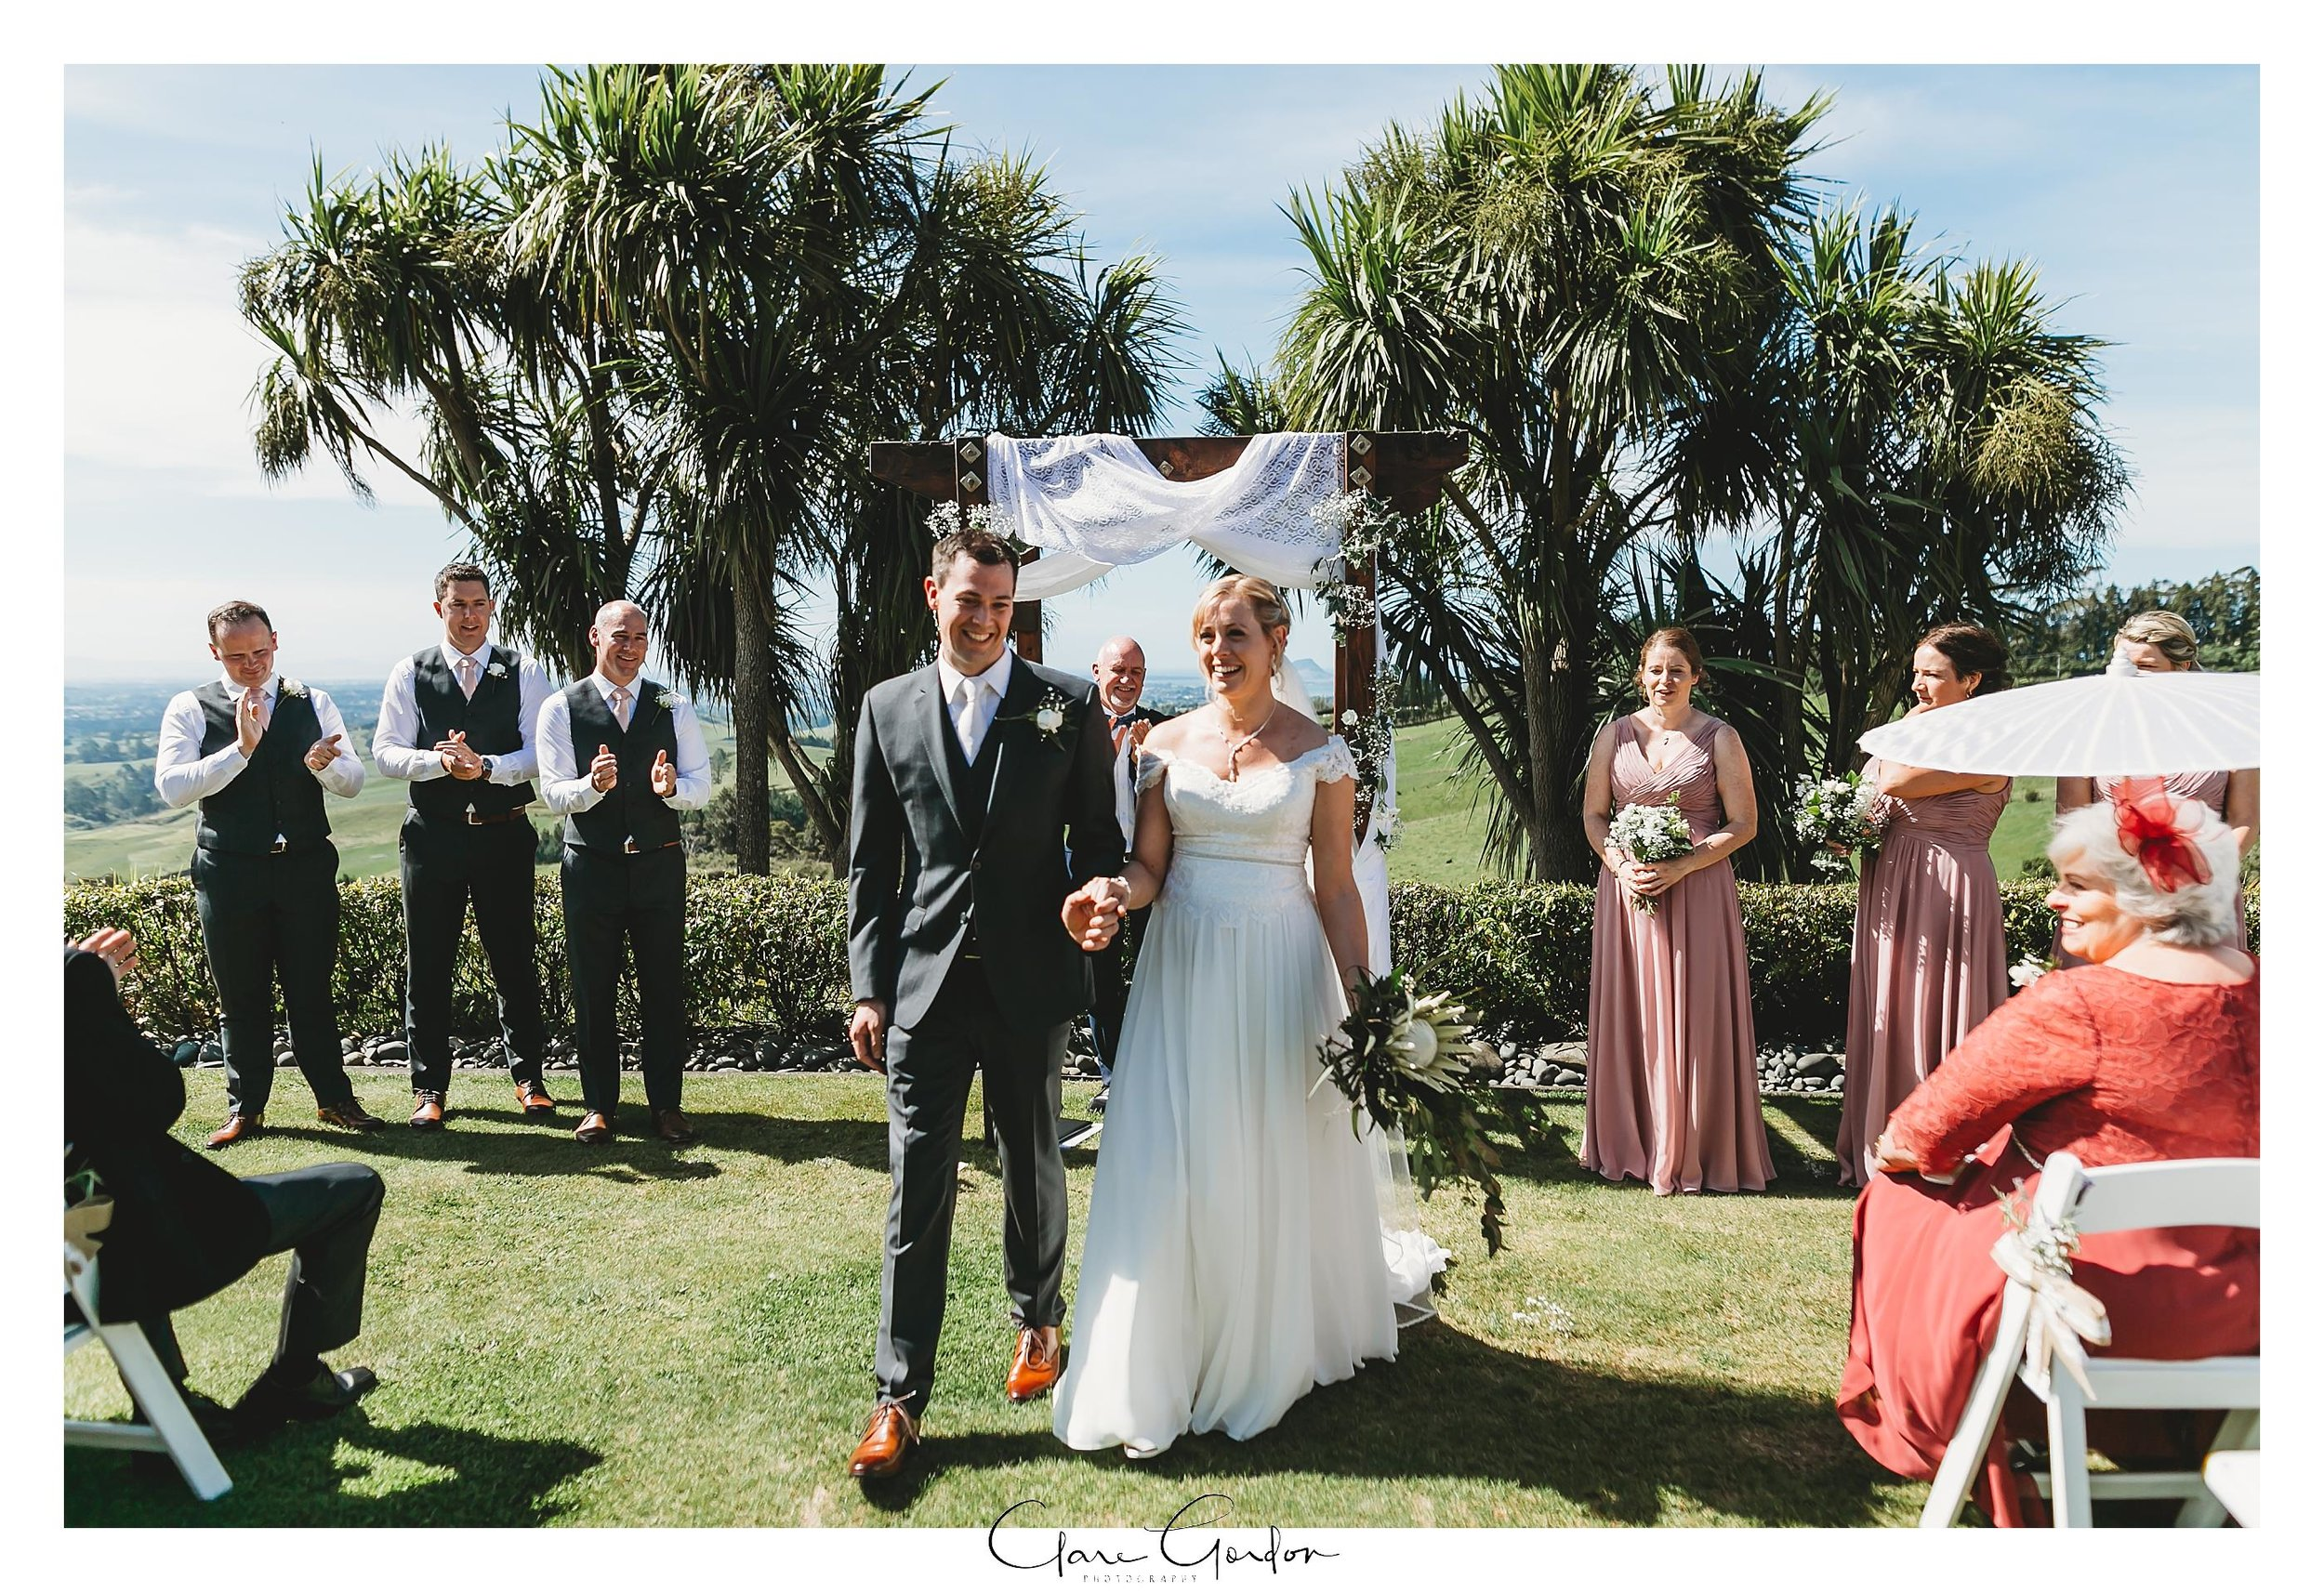 Eagle-Ridge-wedding-photo-Tauranga (117).jpg